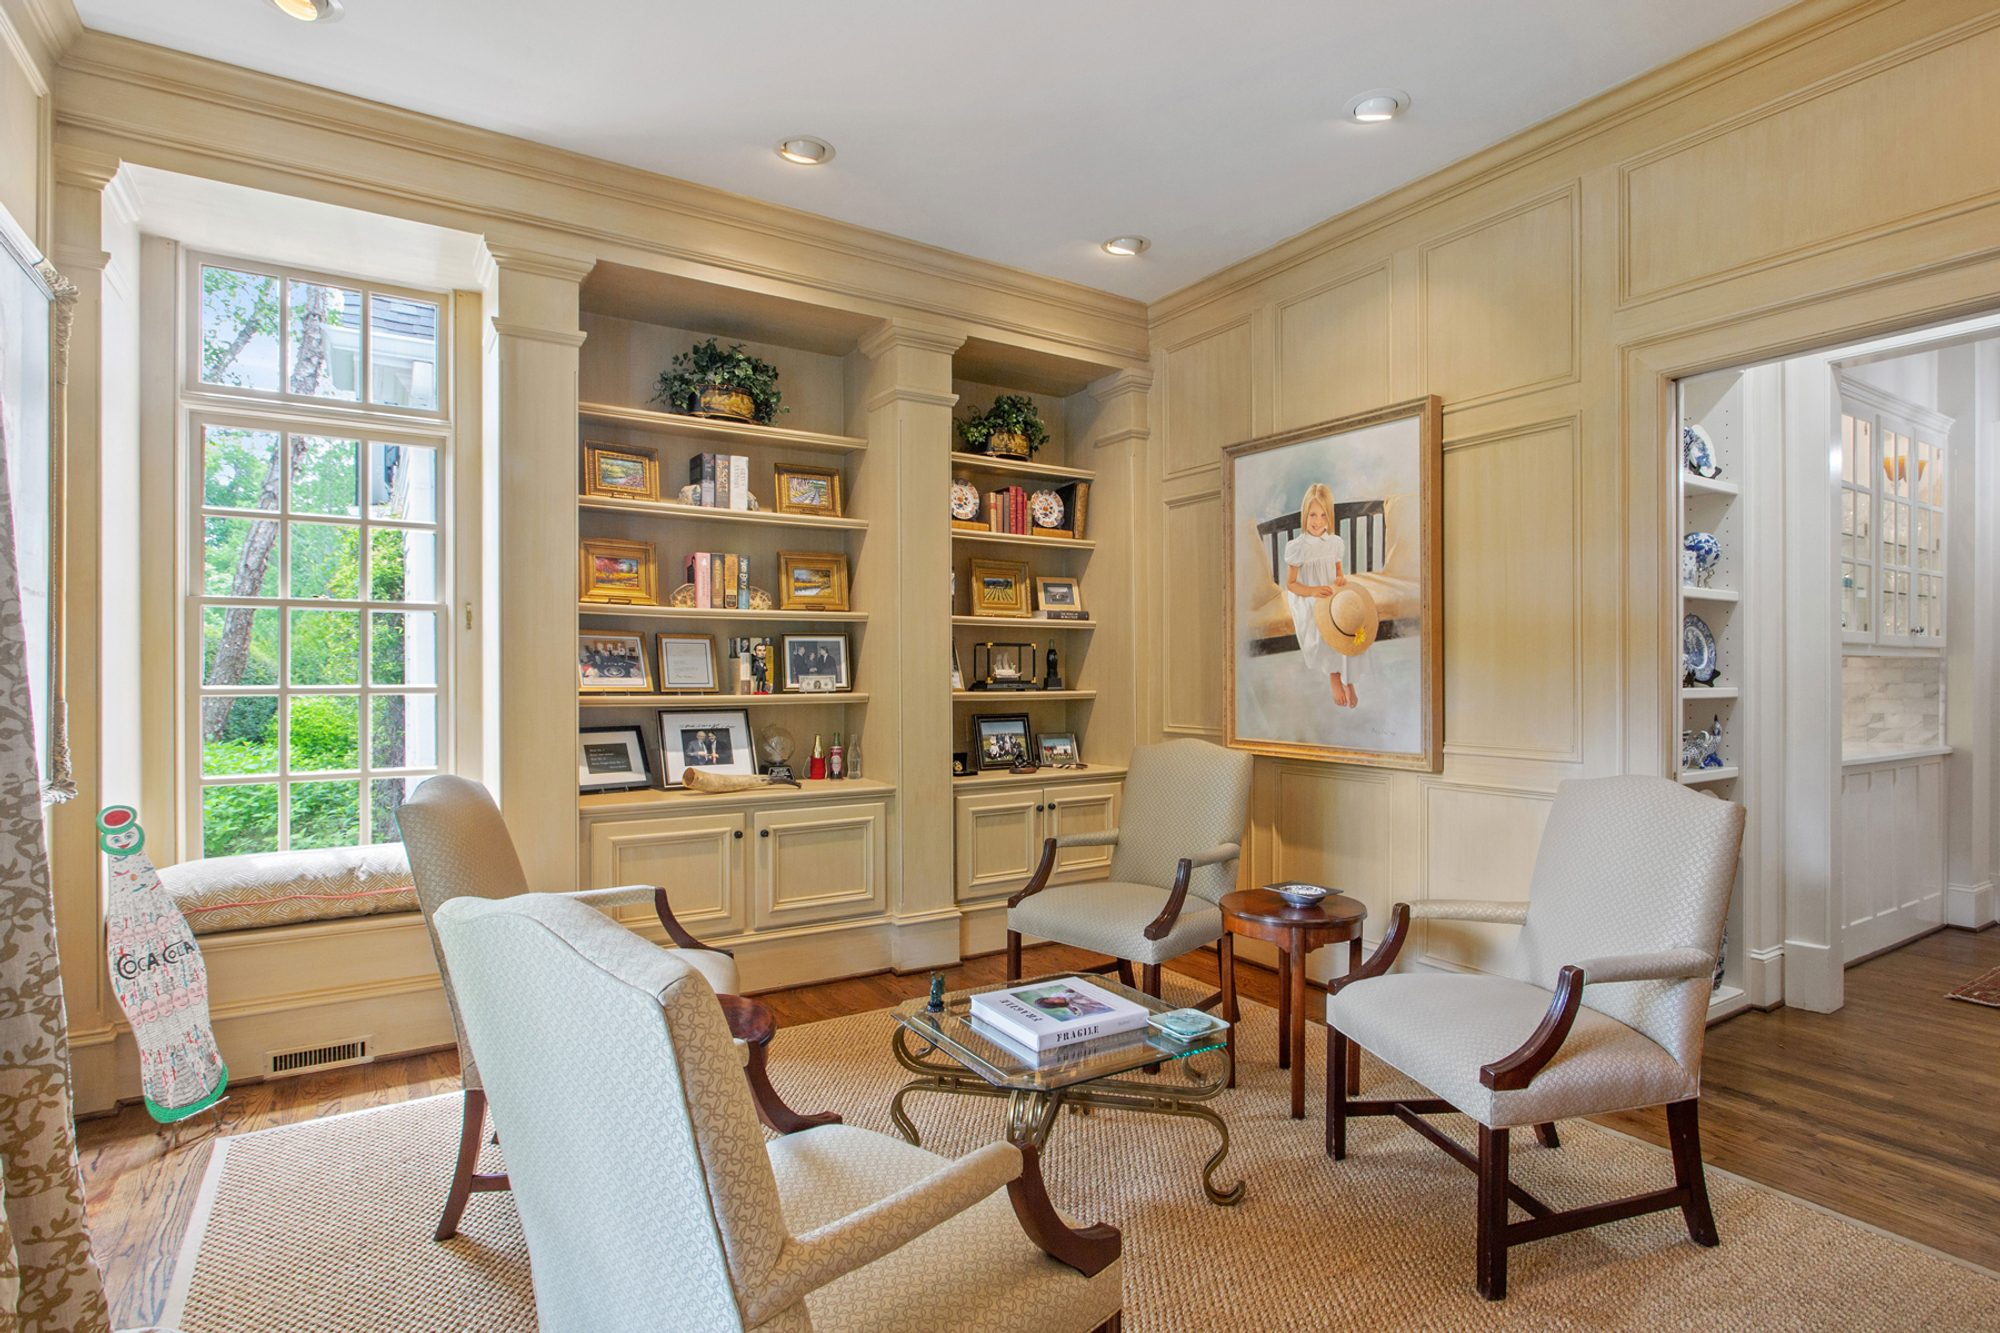 Whitewashed light colored antique wood walls in a beautiful sitting room. Built in shelving and cabinetry, wood floors and a beige area rug. Dark wood chairs with light colored cream cushions. Window seat.